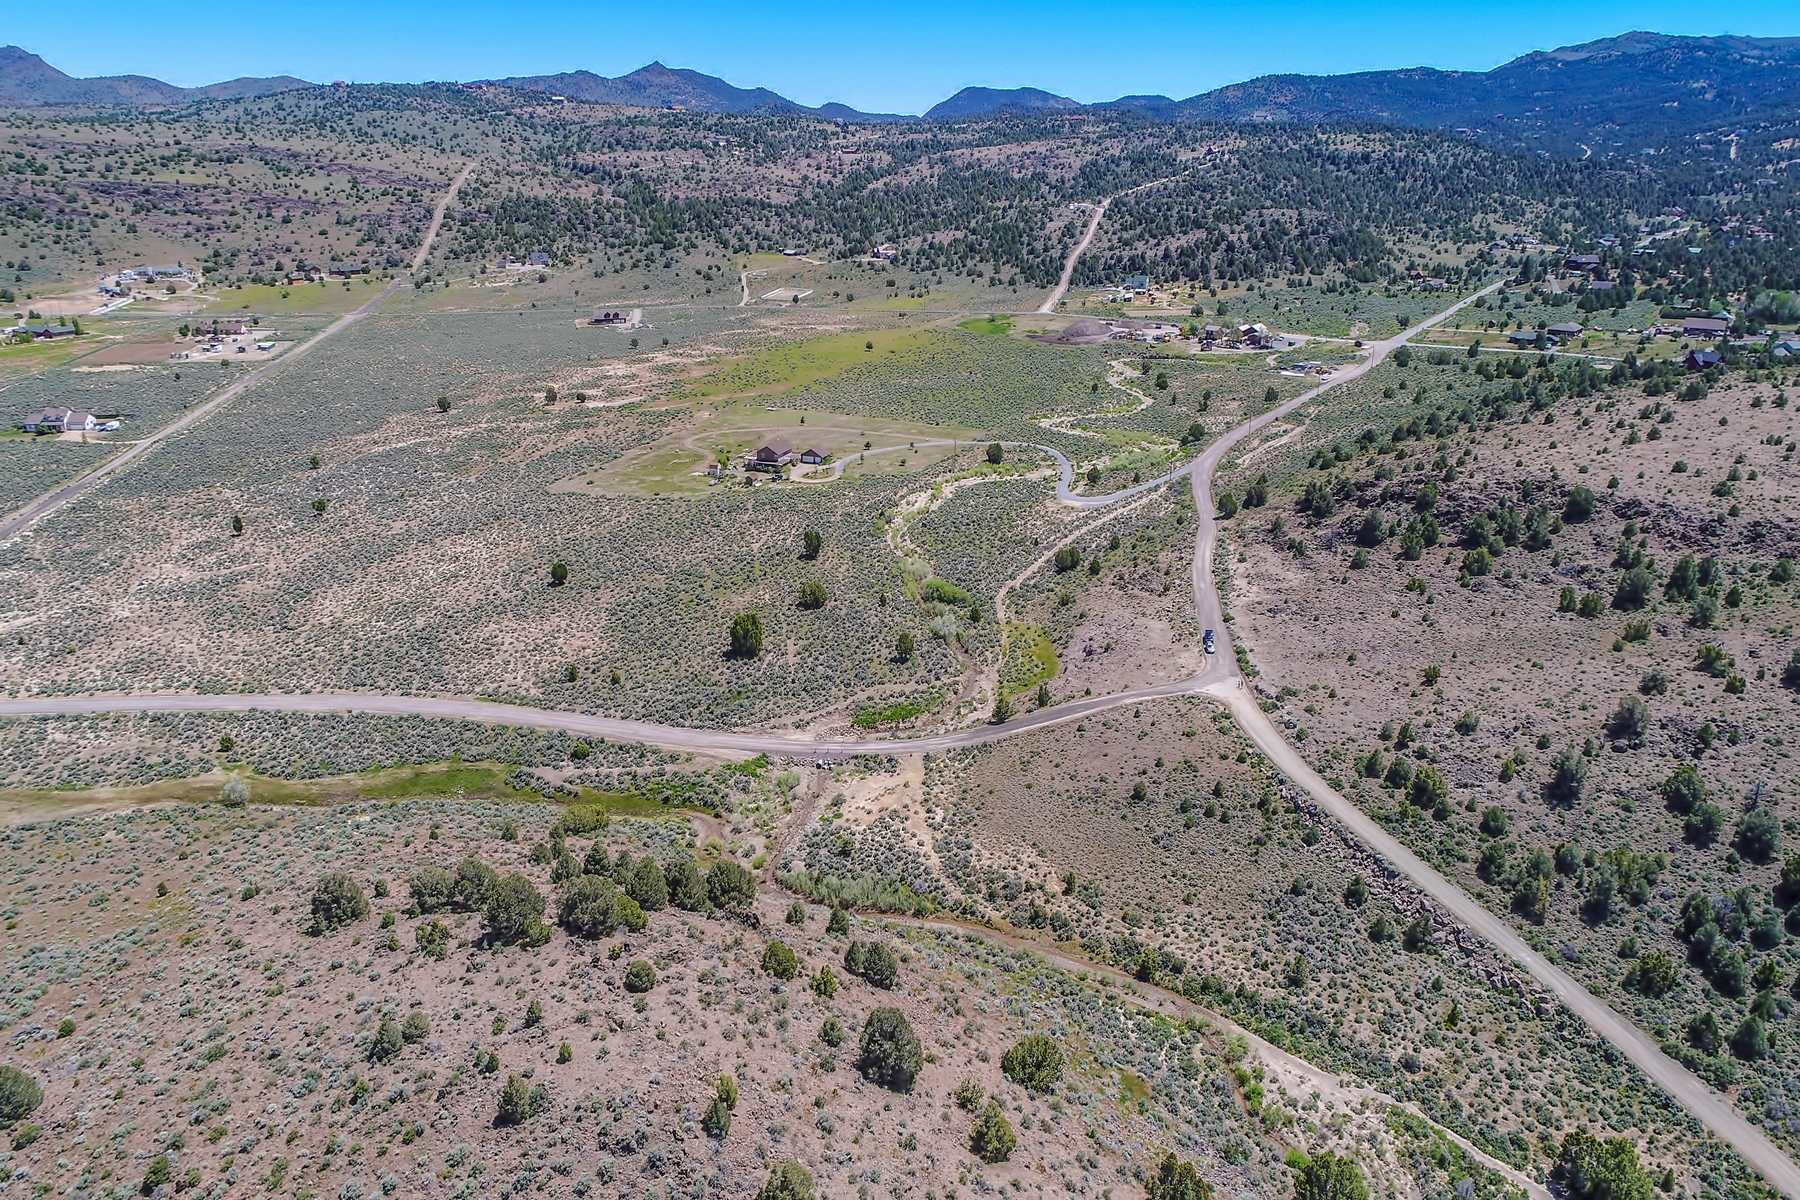 Land for Active at 2890 Lousetown Road, Reno, Nevada 89521 2890 Lousetown Road Reno, Nevada 89521 United States